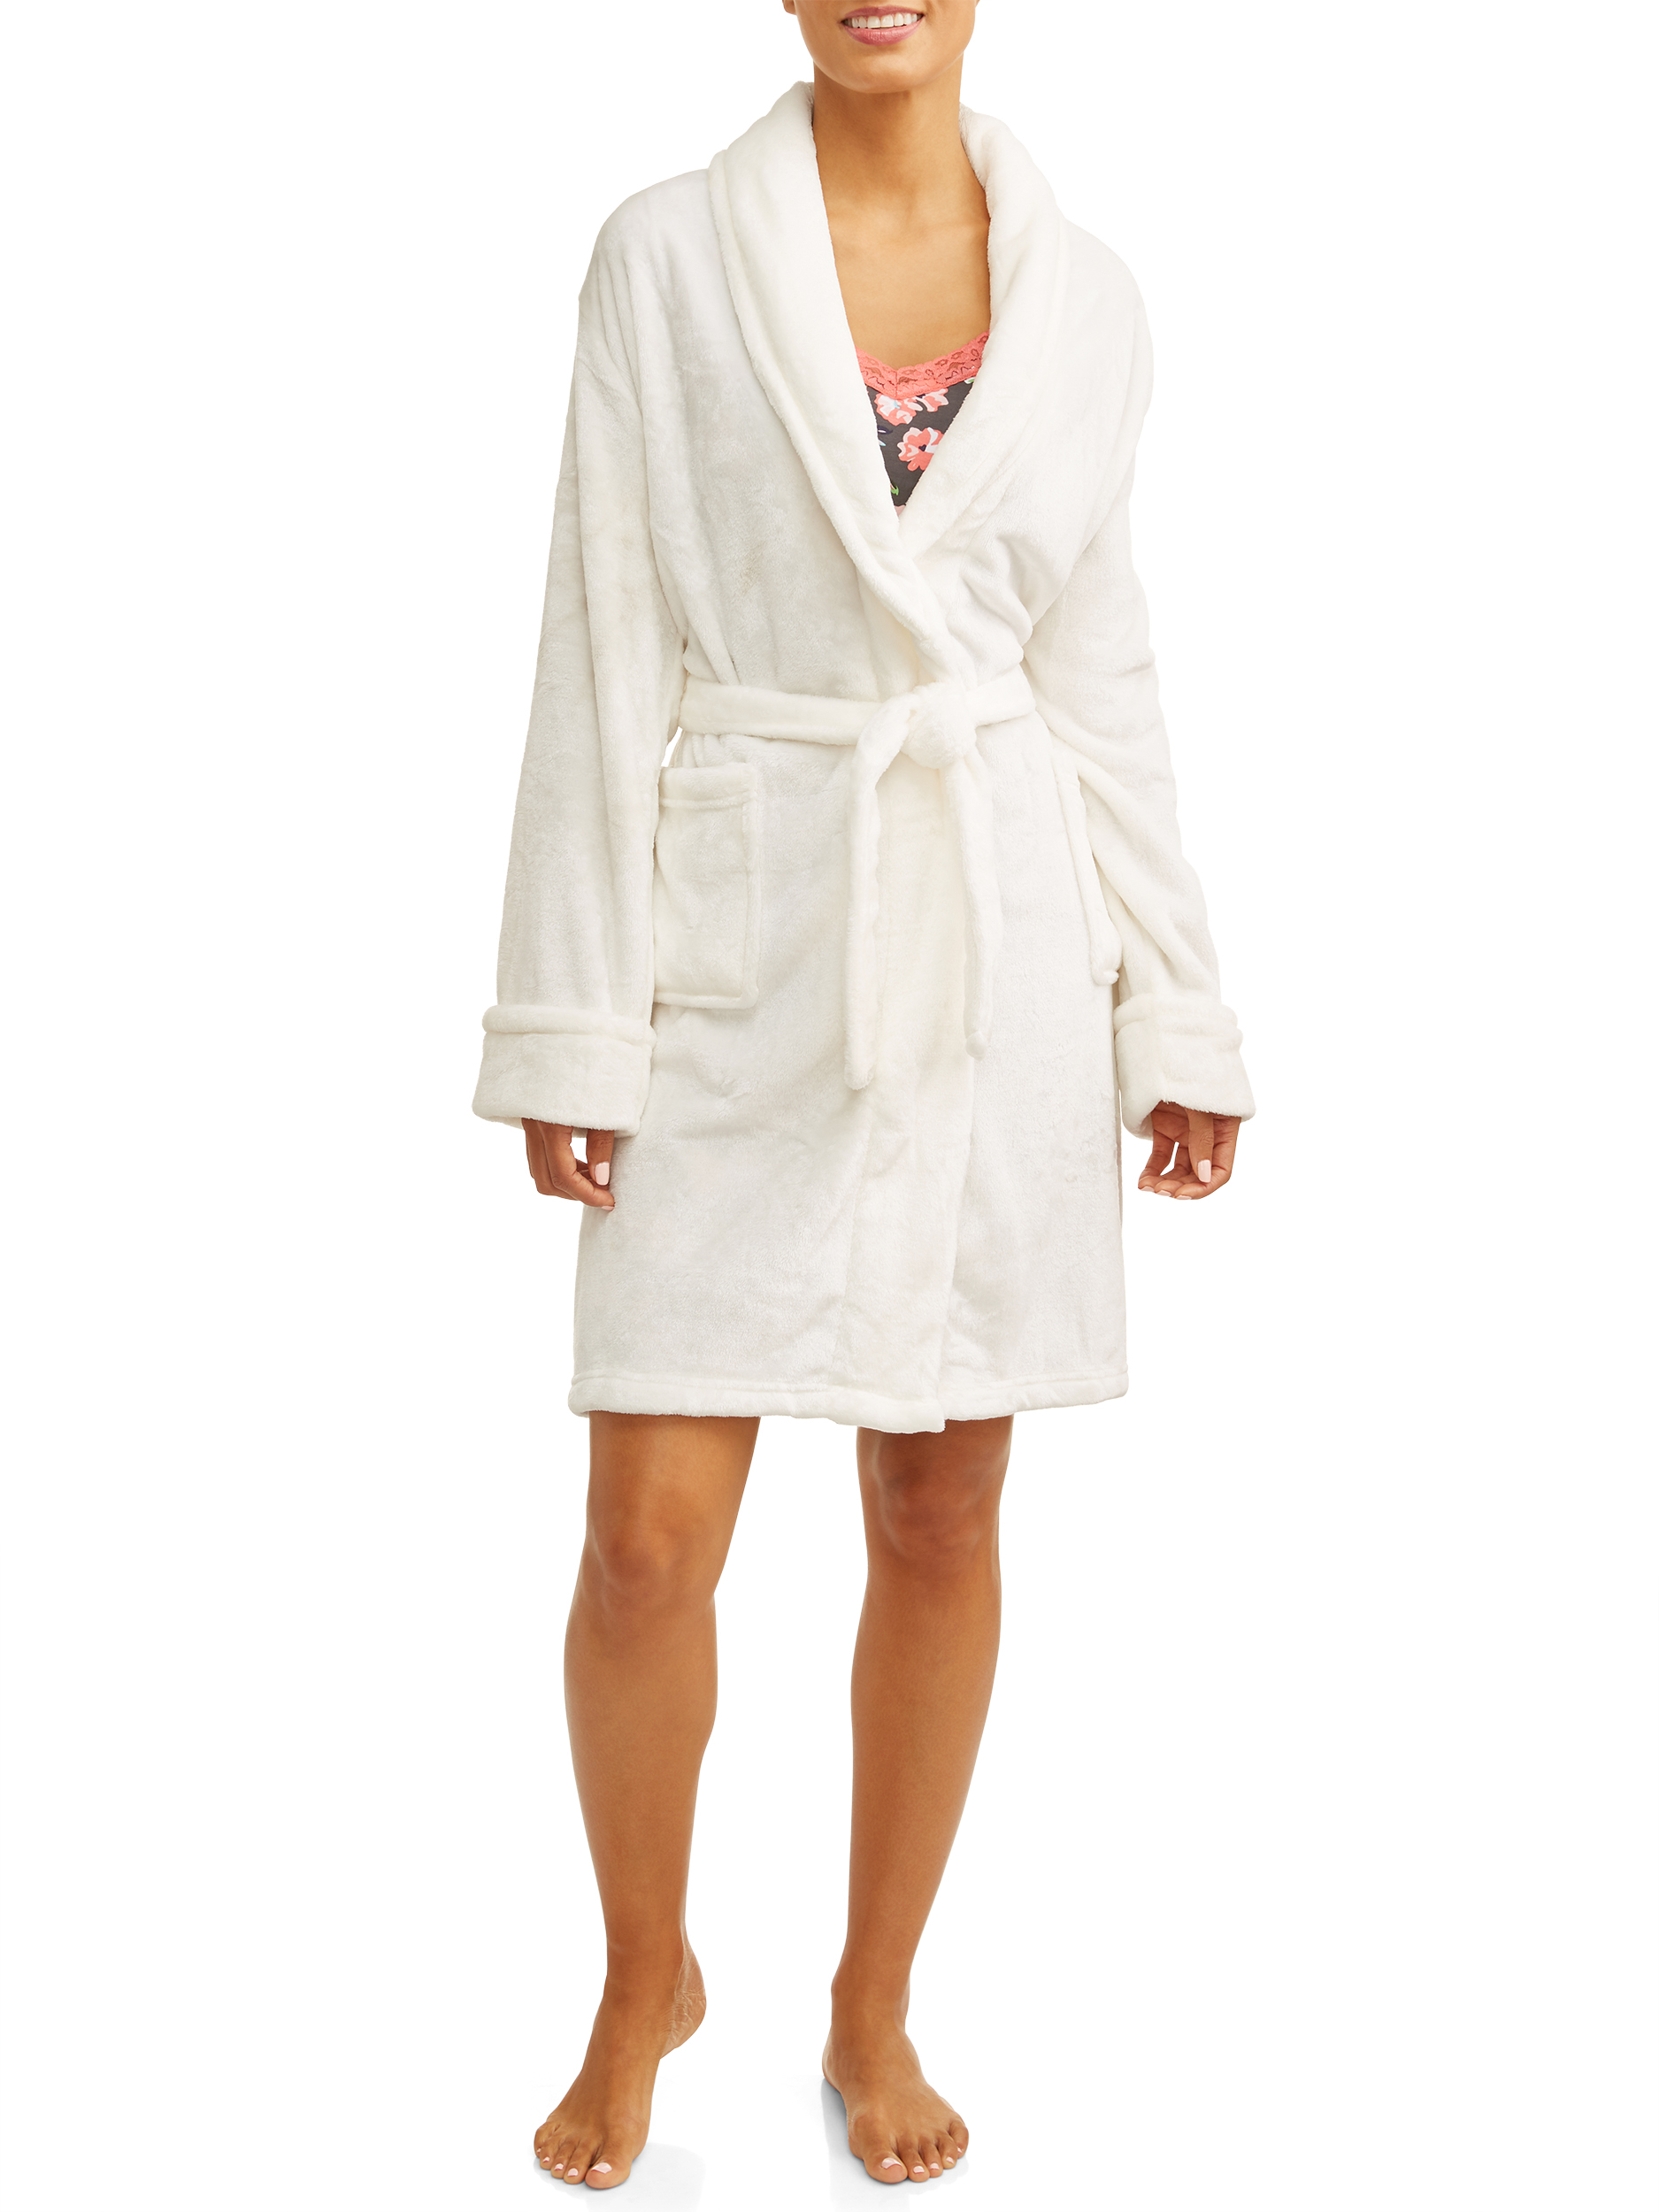 Bath & Spa Women's Plu...